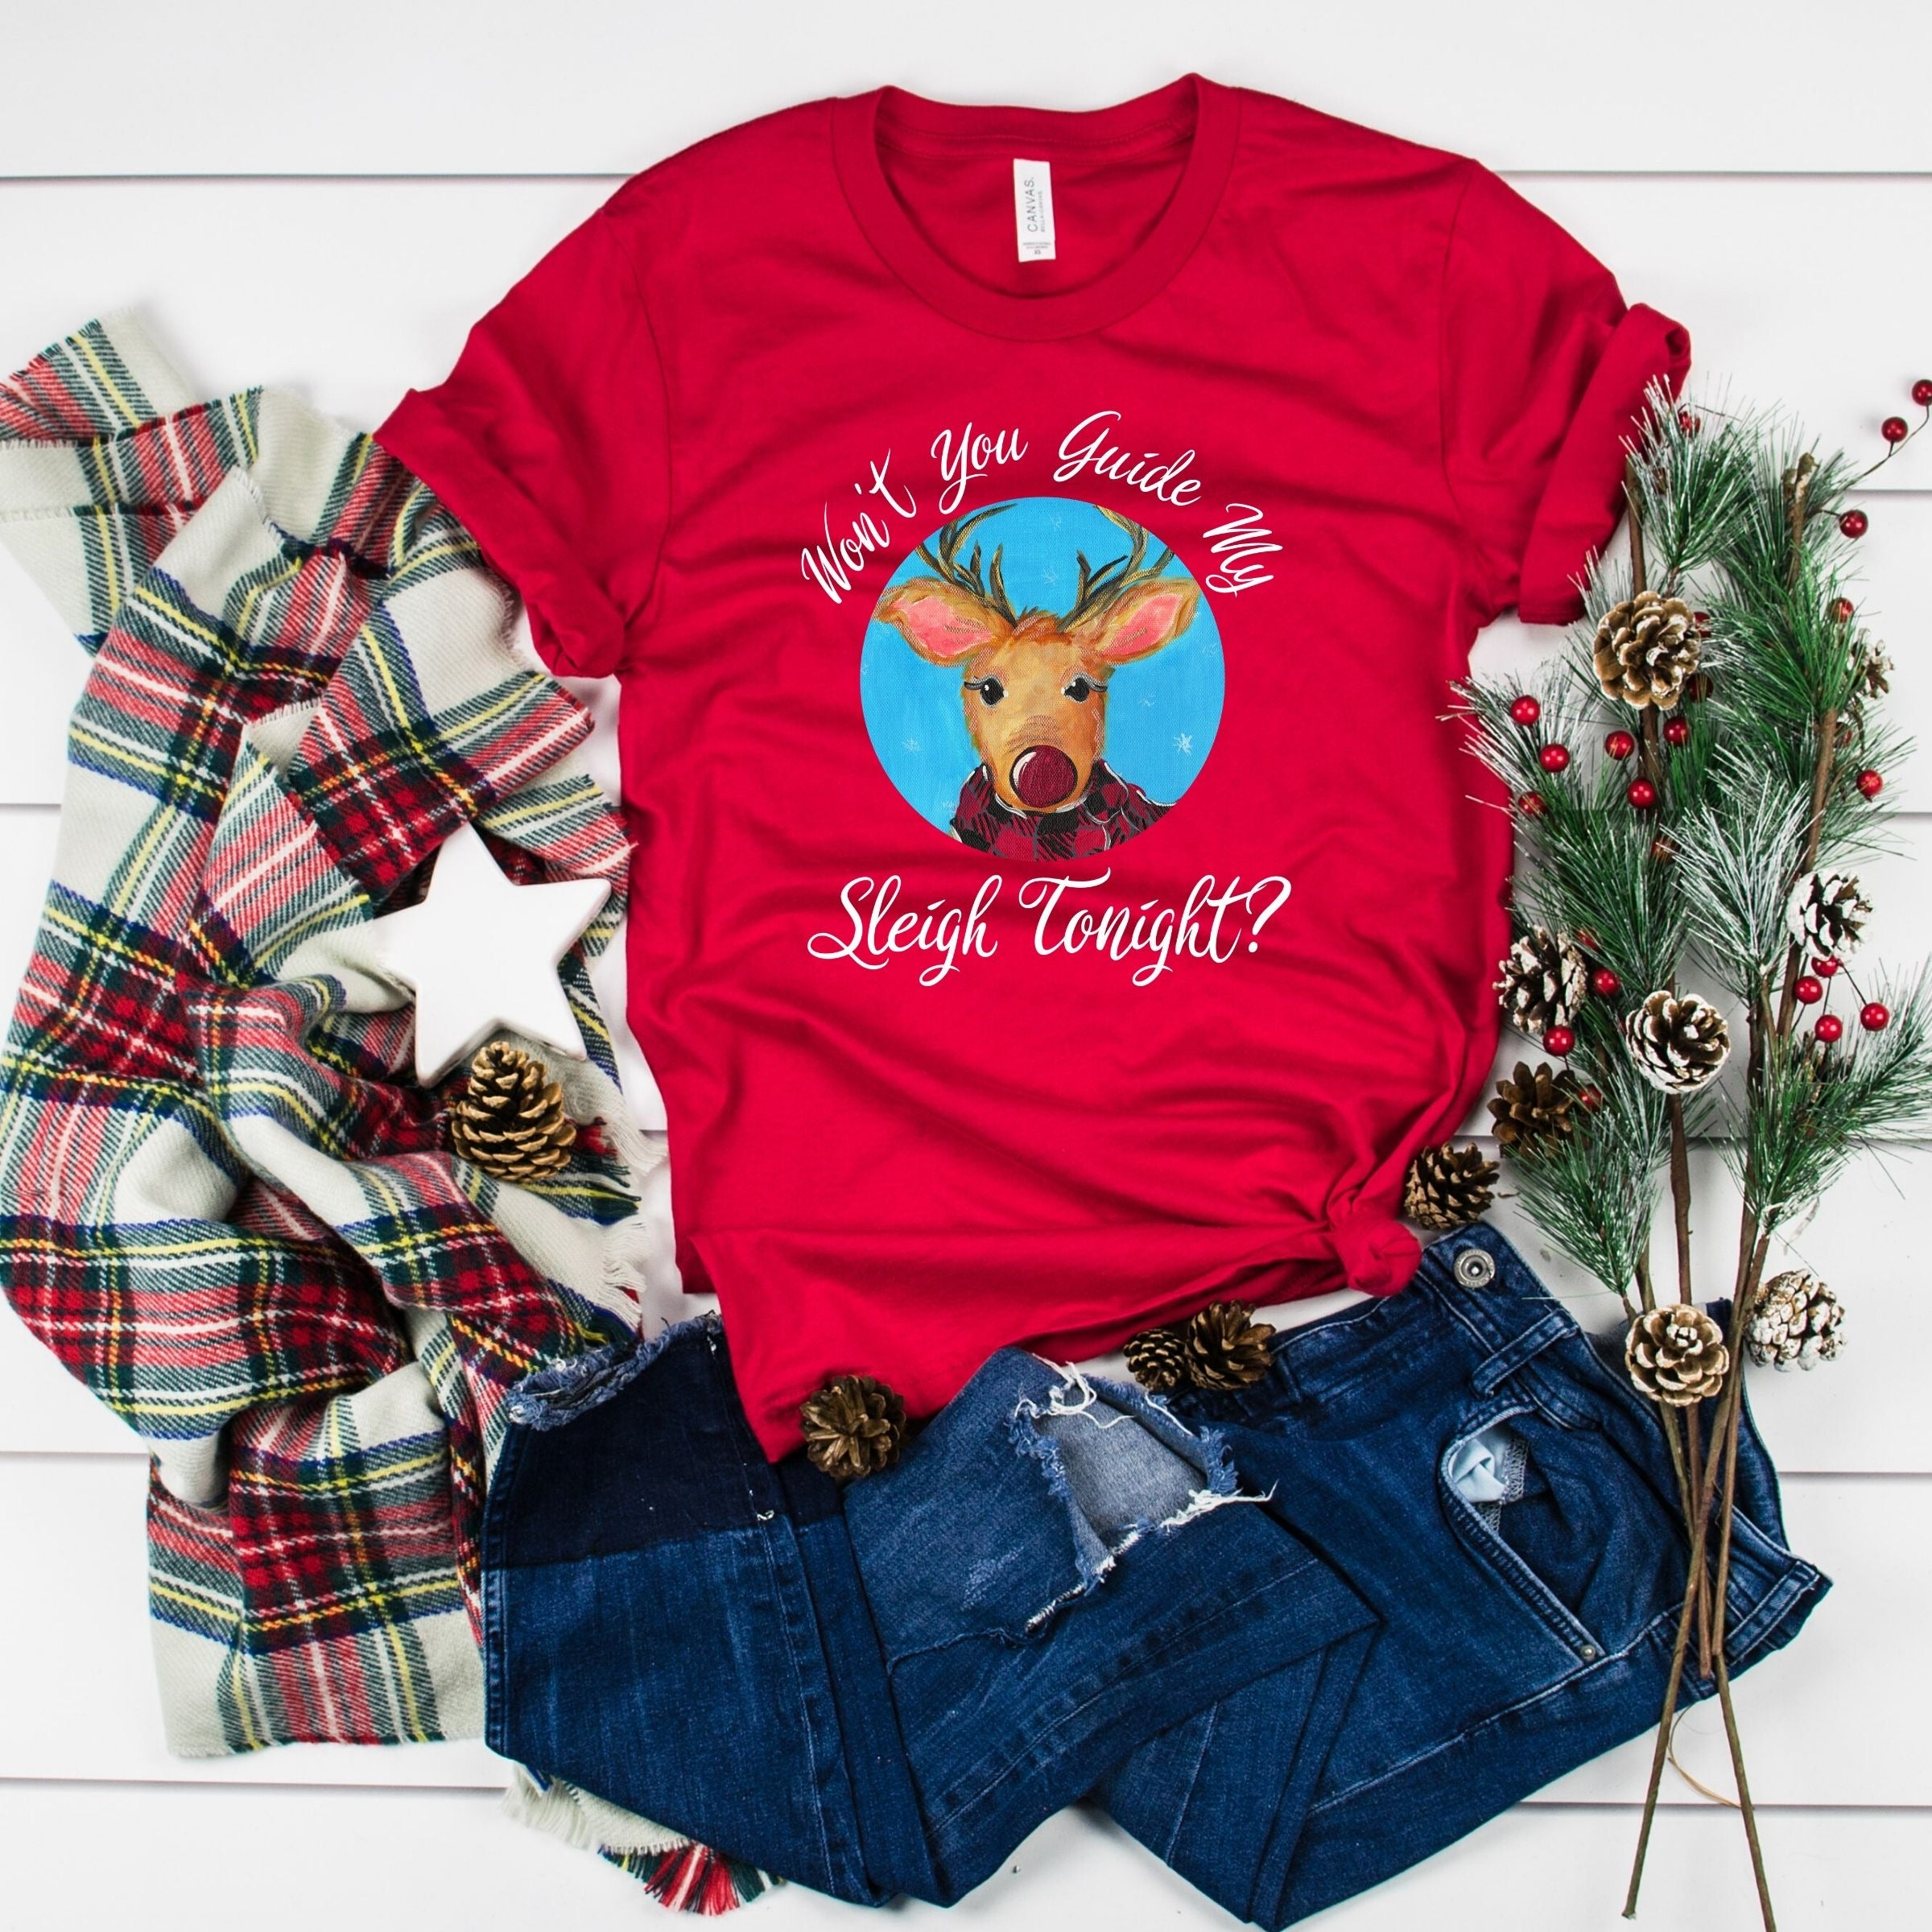 WHOLESALE :: Won't You Guide ~ Red-WXmas-Shop-Wholesale-Womens-Boutique-Custom-Graphic-Tees-Branding-Gifts